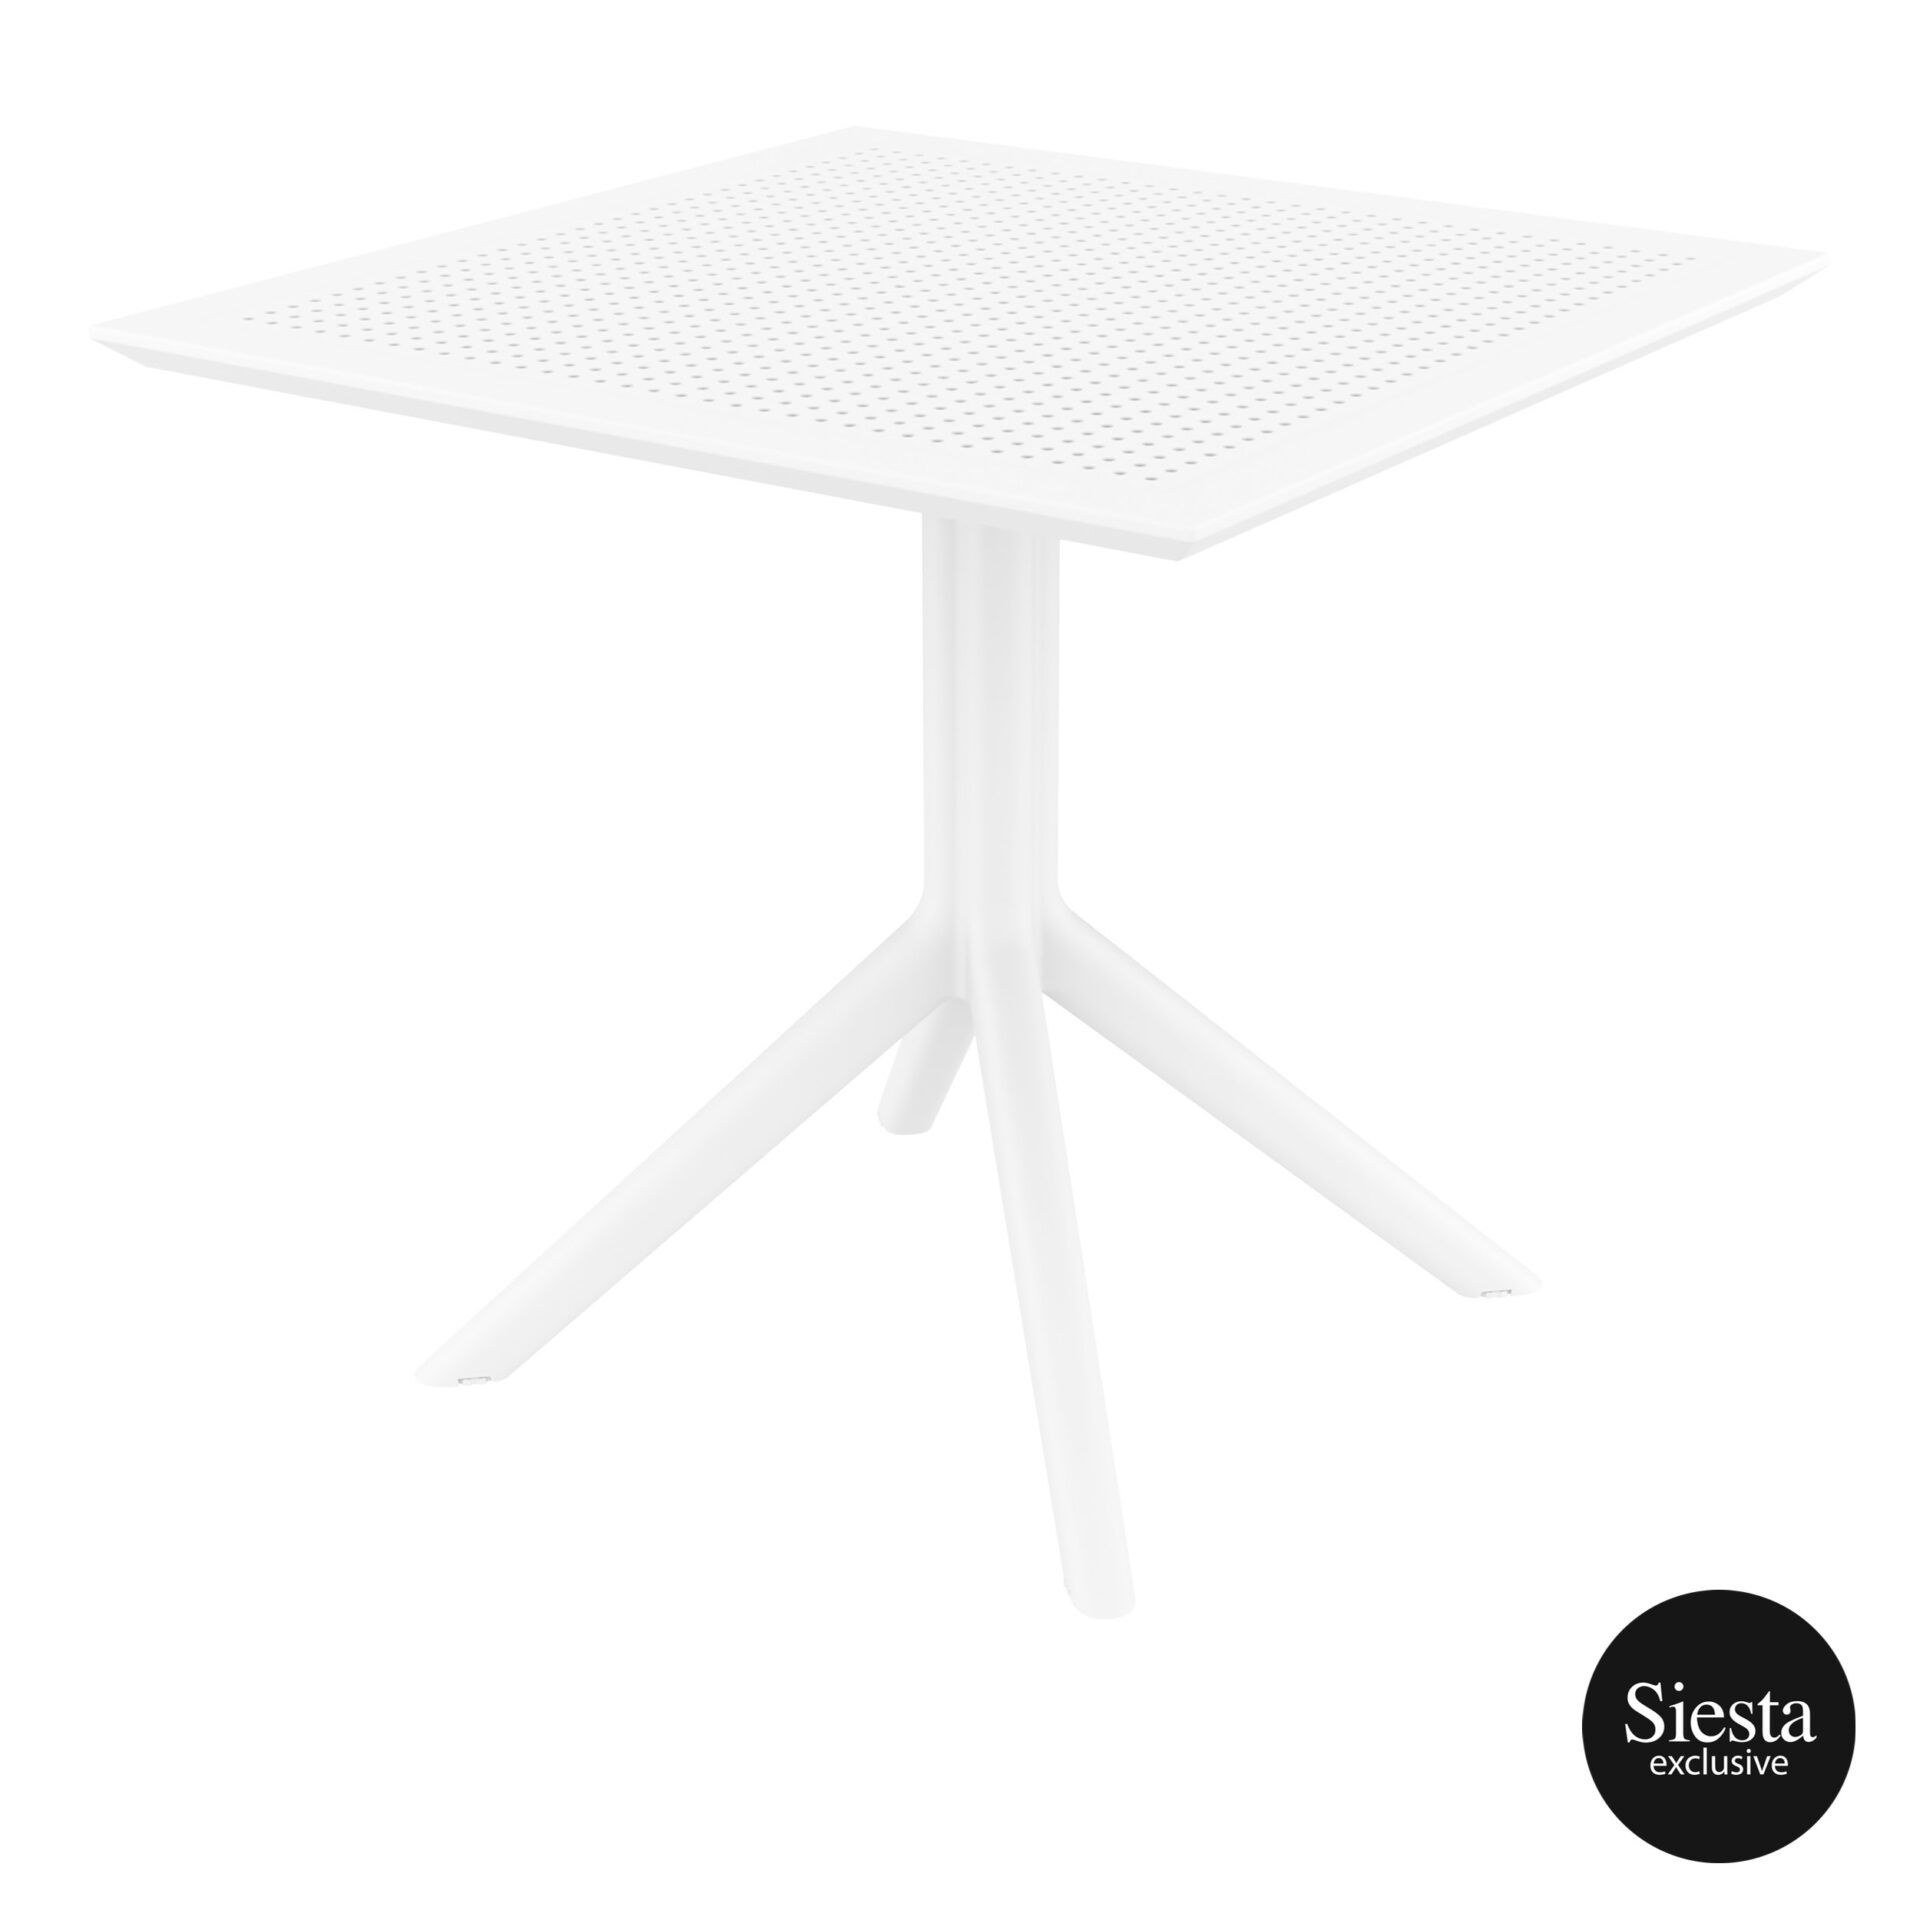 polypropylene outdoor cafe sky table 80 white front side 1